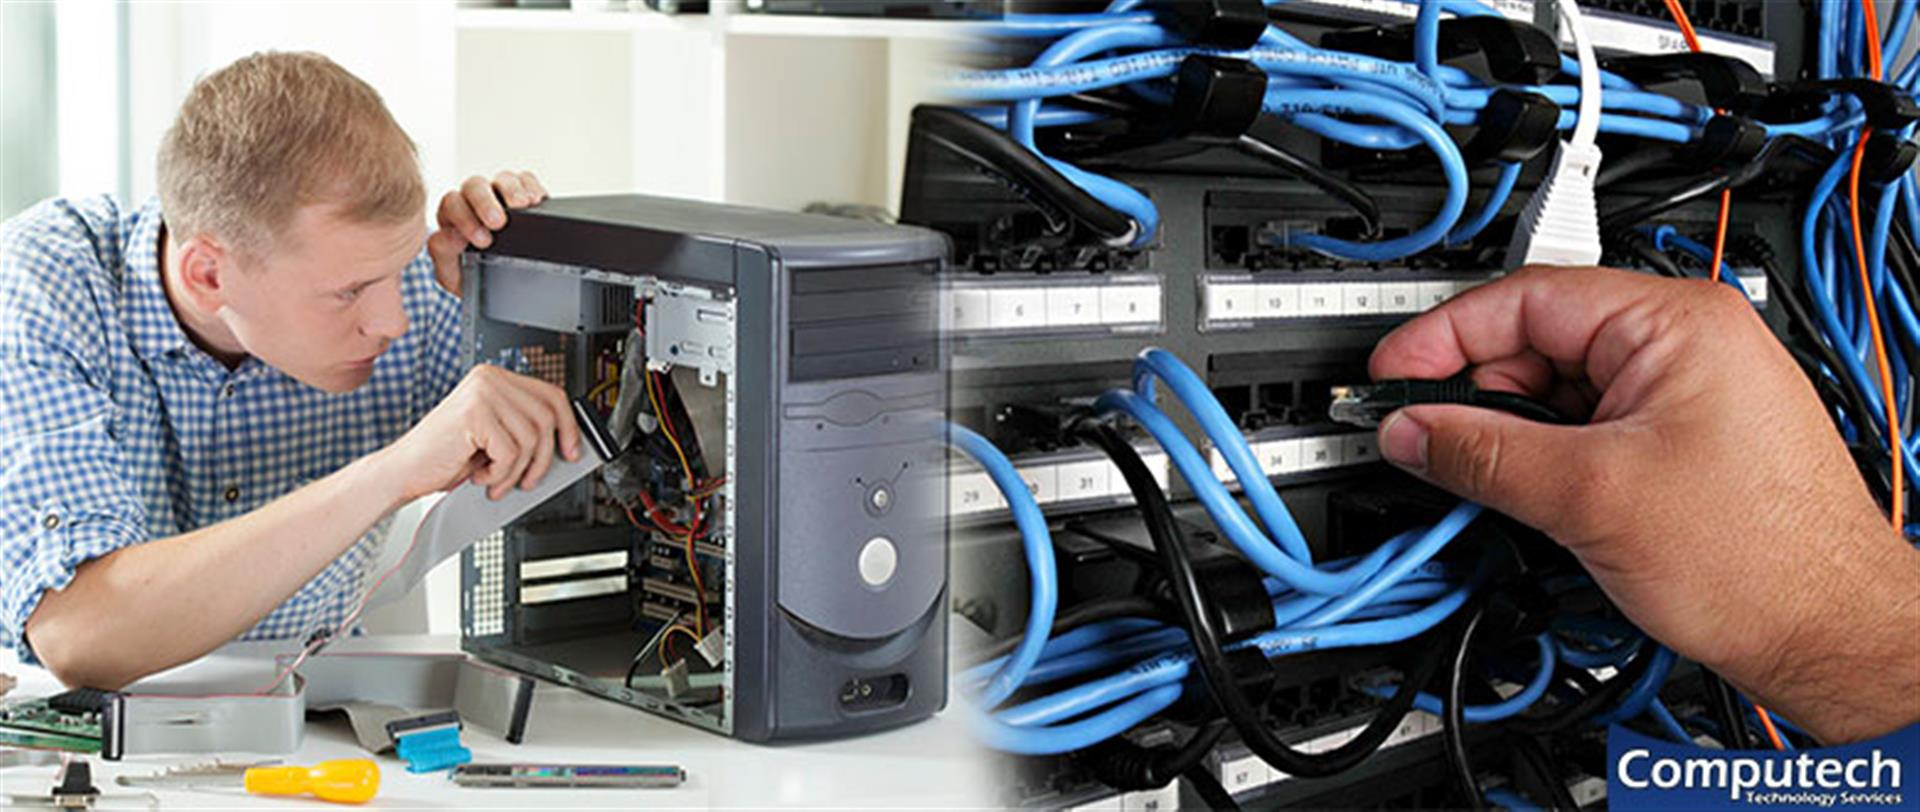 Headland Alabama On-Site Computer & Printer Repairs, Networking, Voice & Data Low Voltage Cabling Services